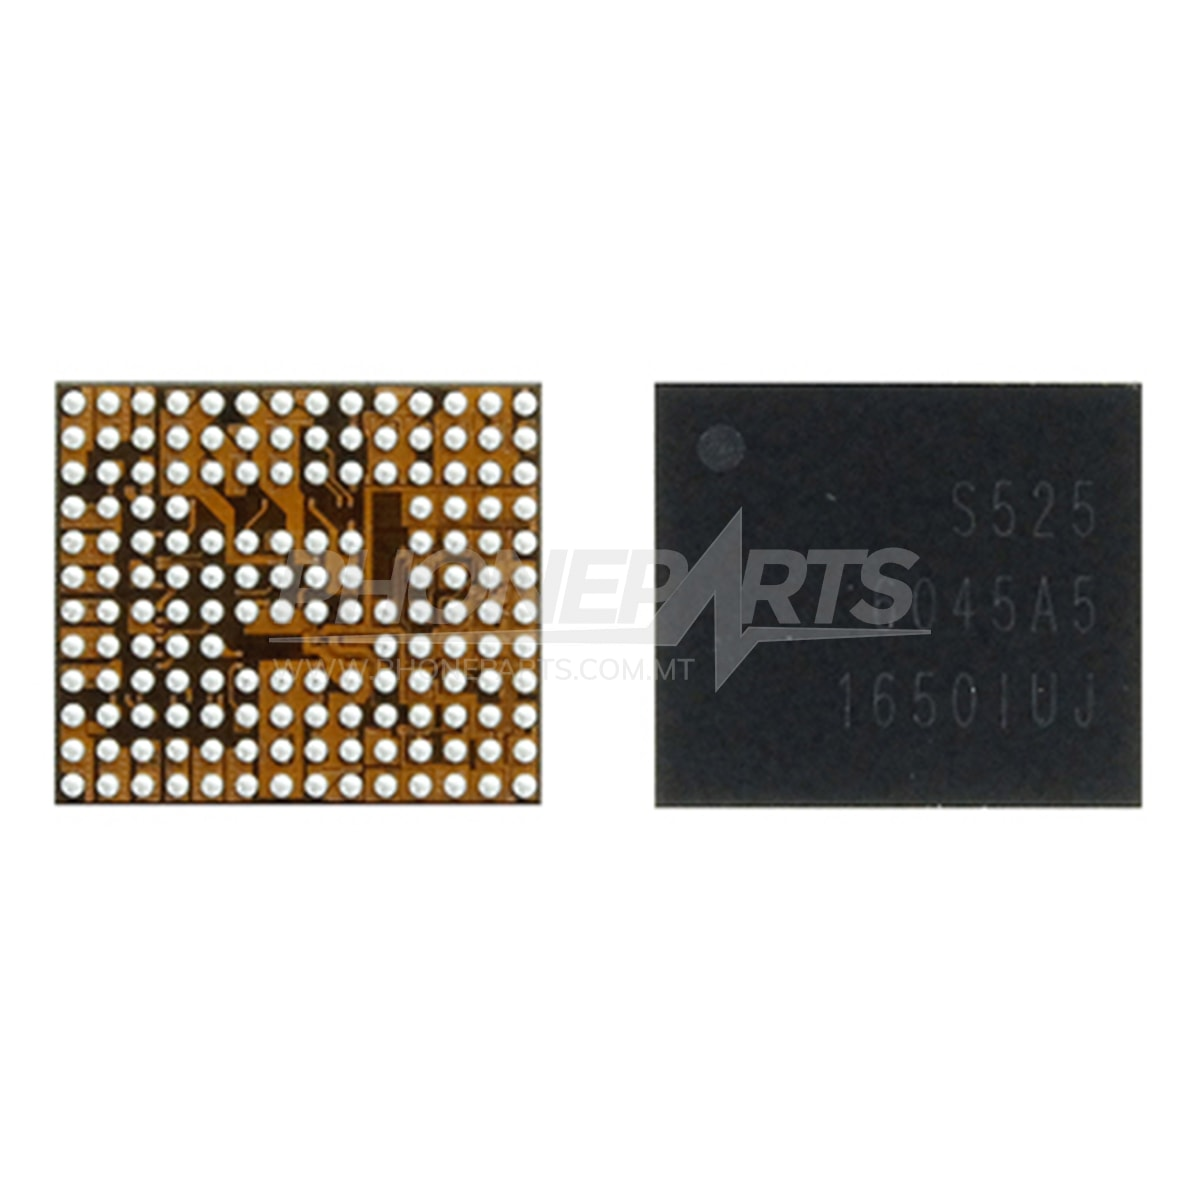 95ba93767be Power IC (S2MPU05X01-6230 WLCS) Samsung A5 2017 (SM-A520) | Phoneparts